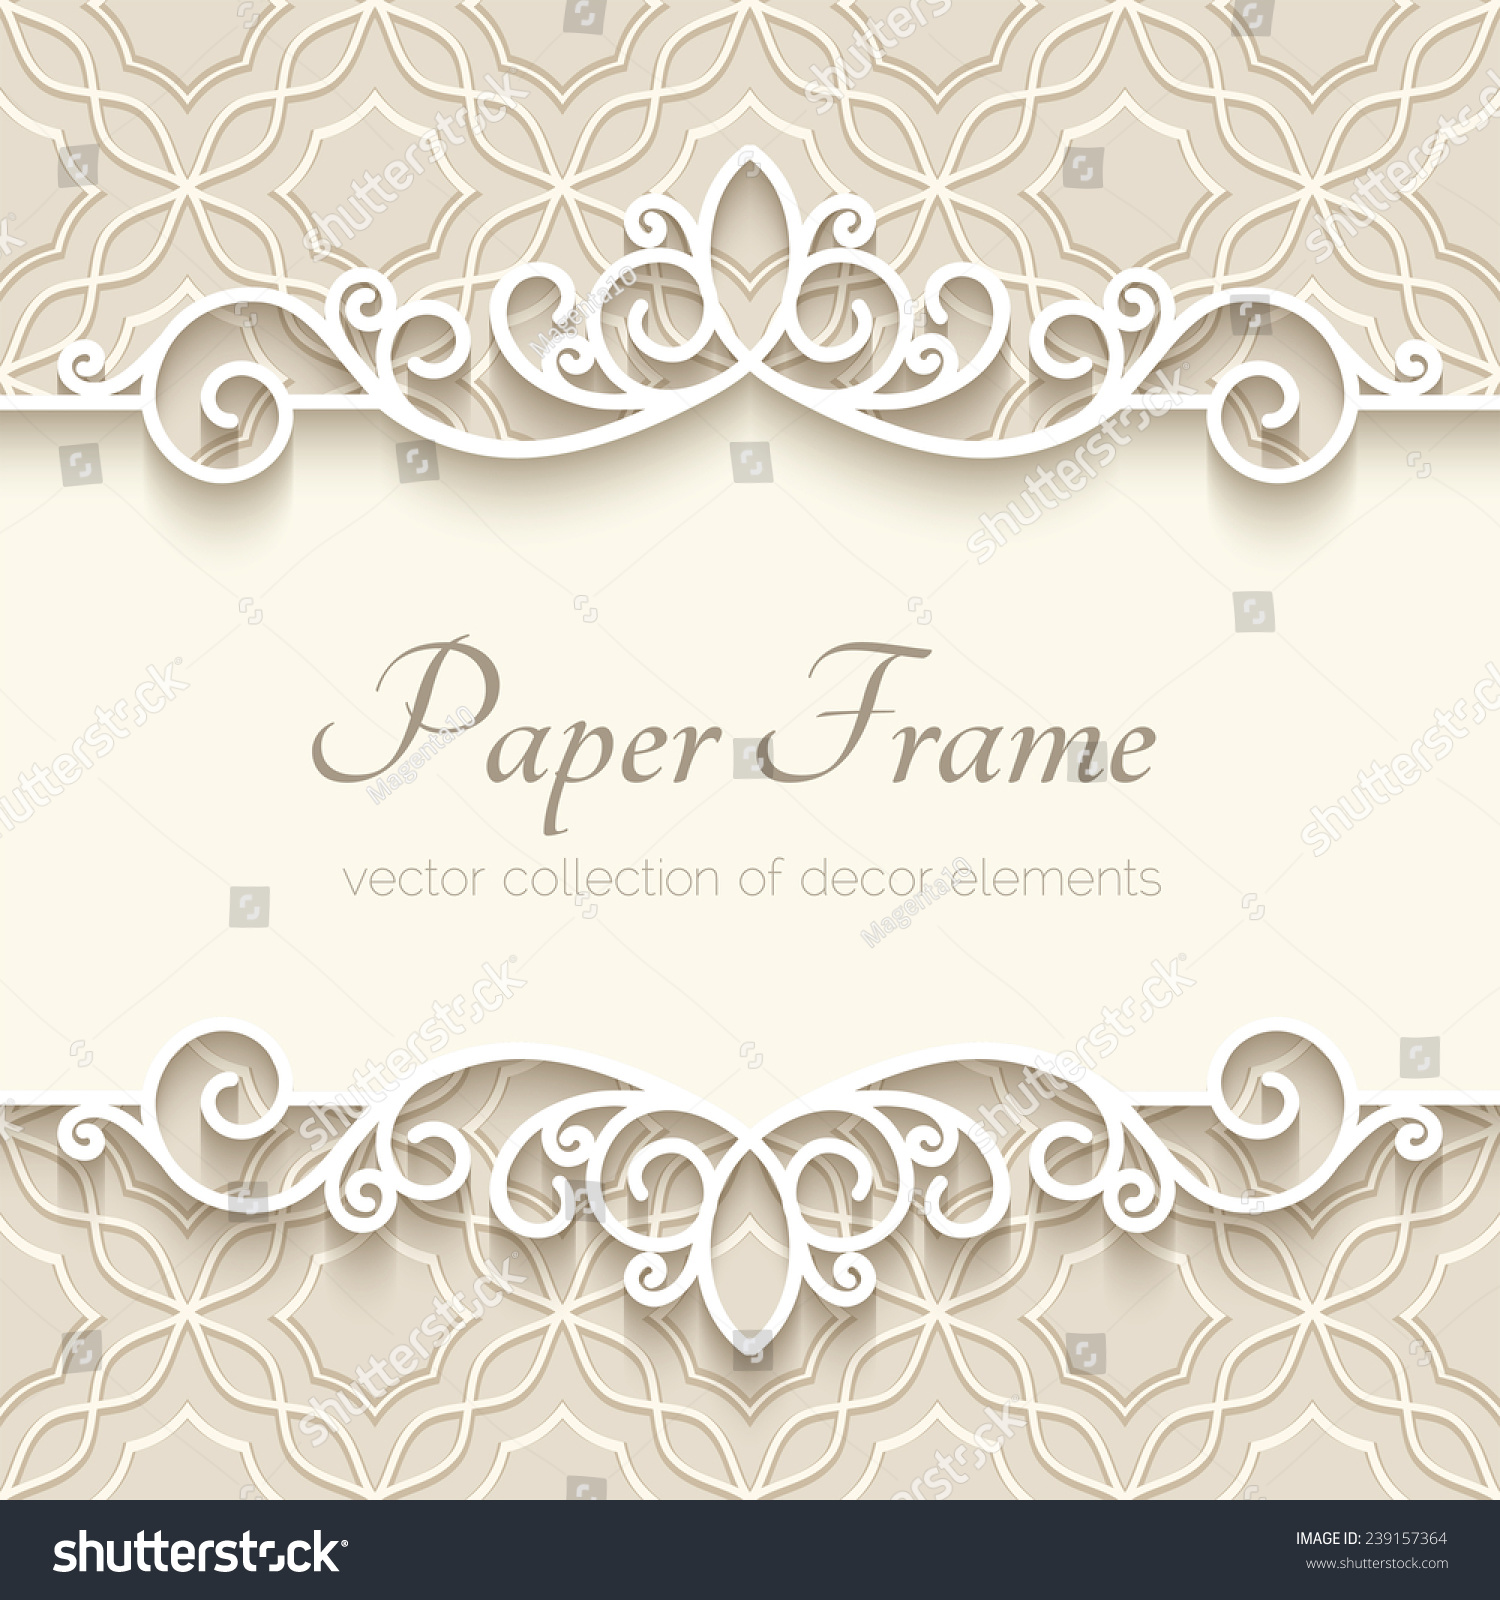 Vintage vector background paper border decoration stock for Background decoration images